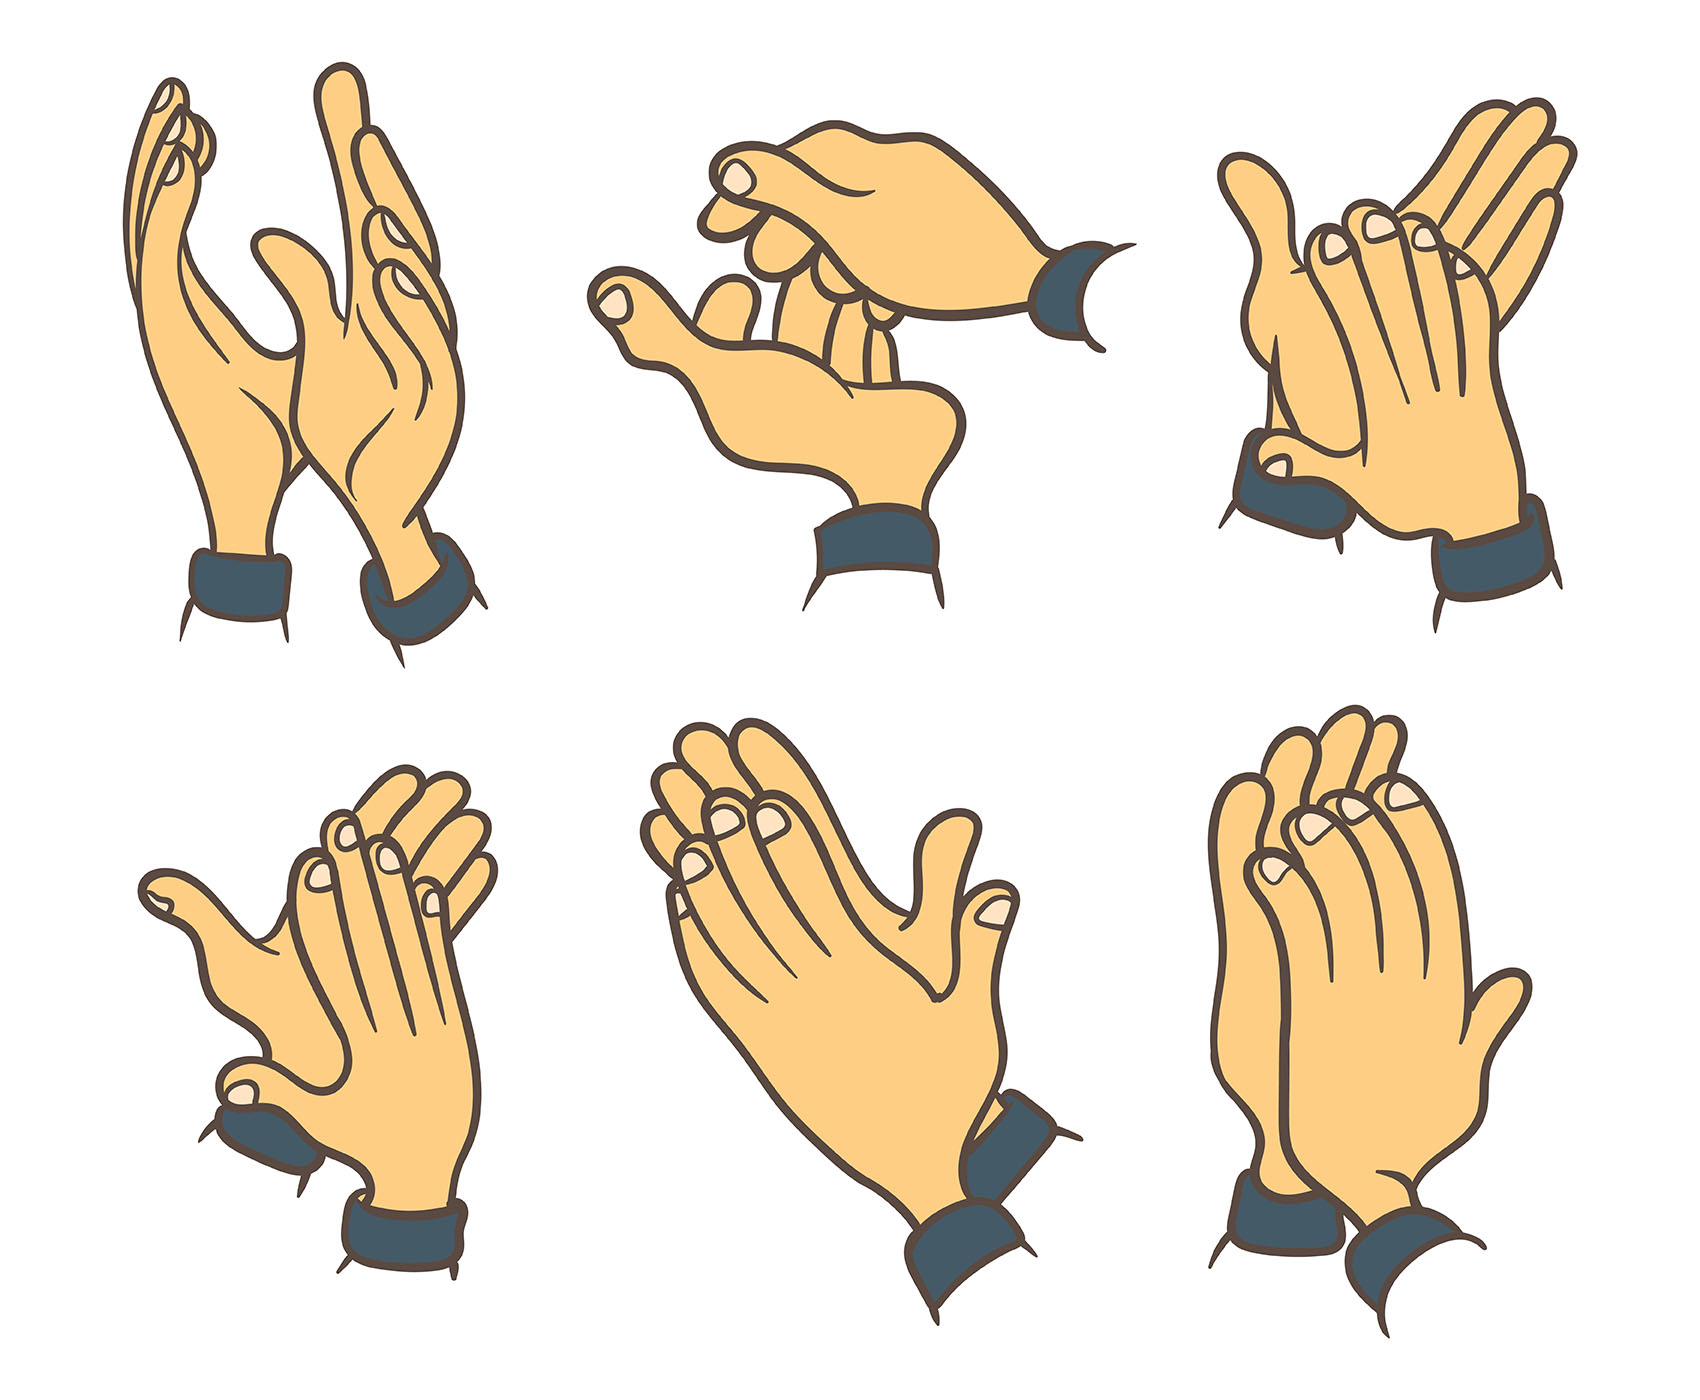 Clap clipart clapping, Clap clapping Transparent FREE for ...  Clapping Hands Clipart